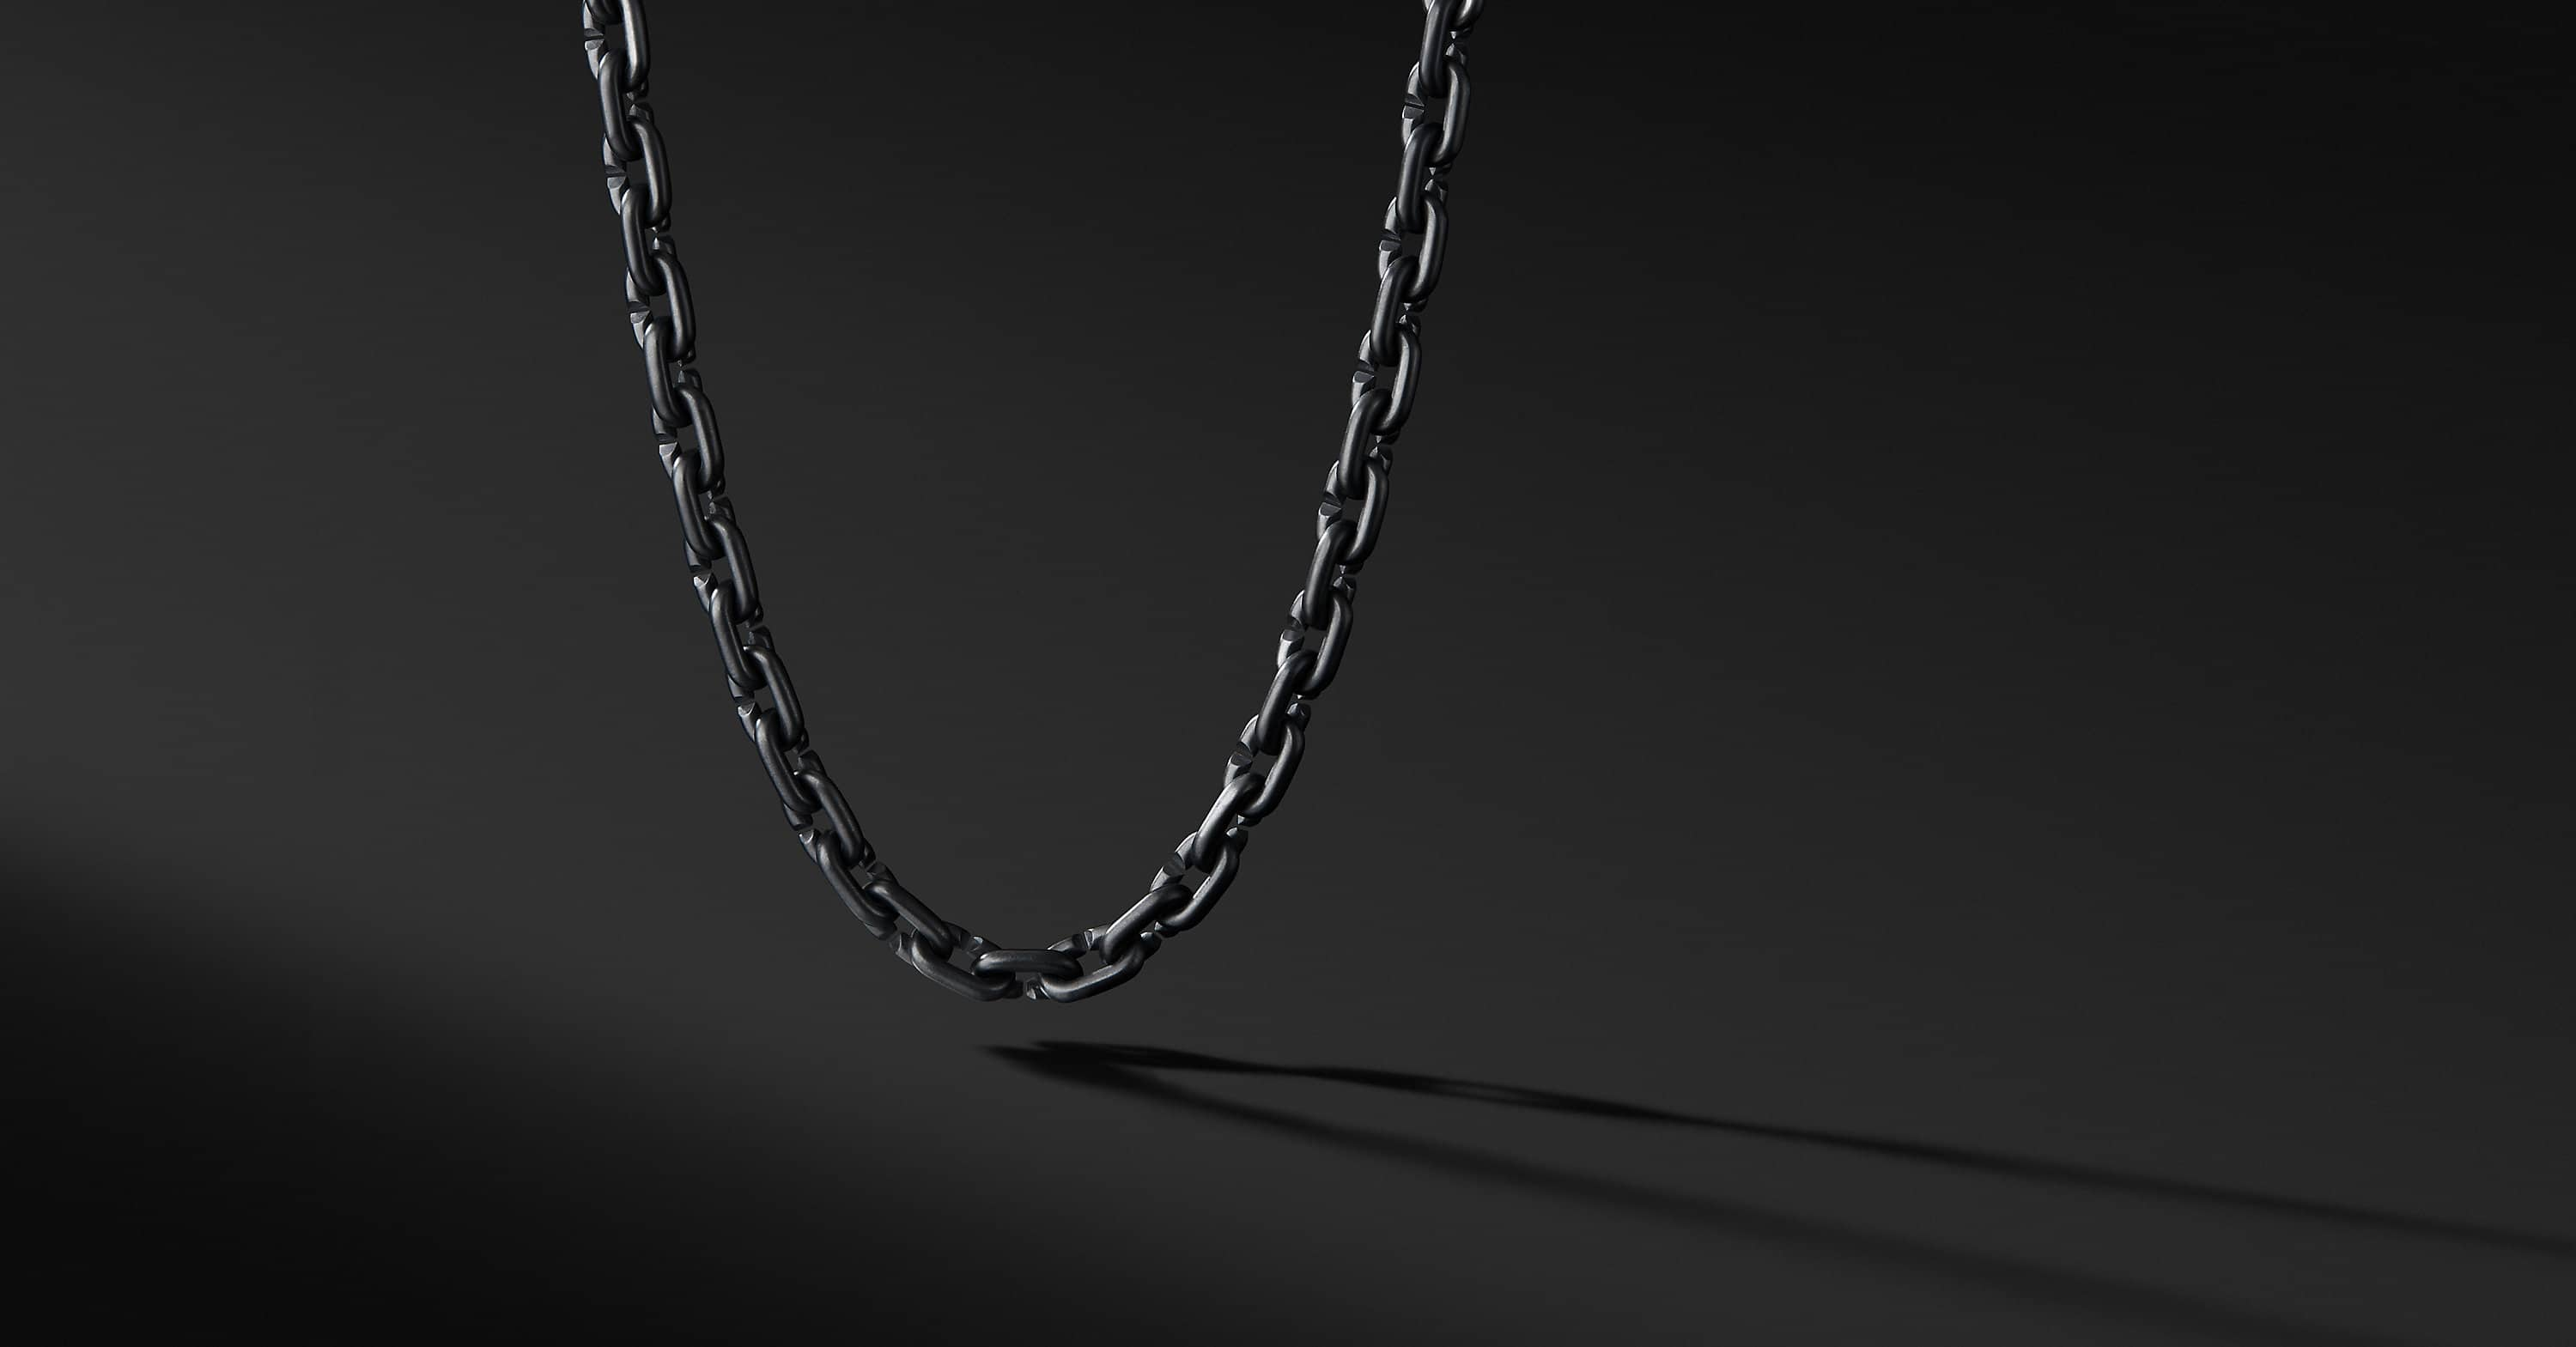 Chain Link Narrow Necklace with Black Titanium